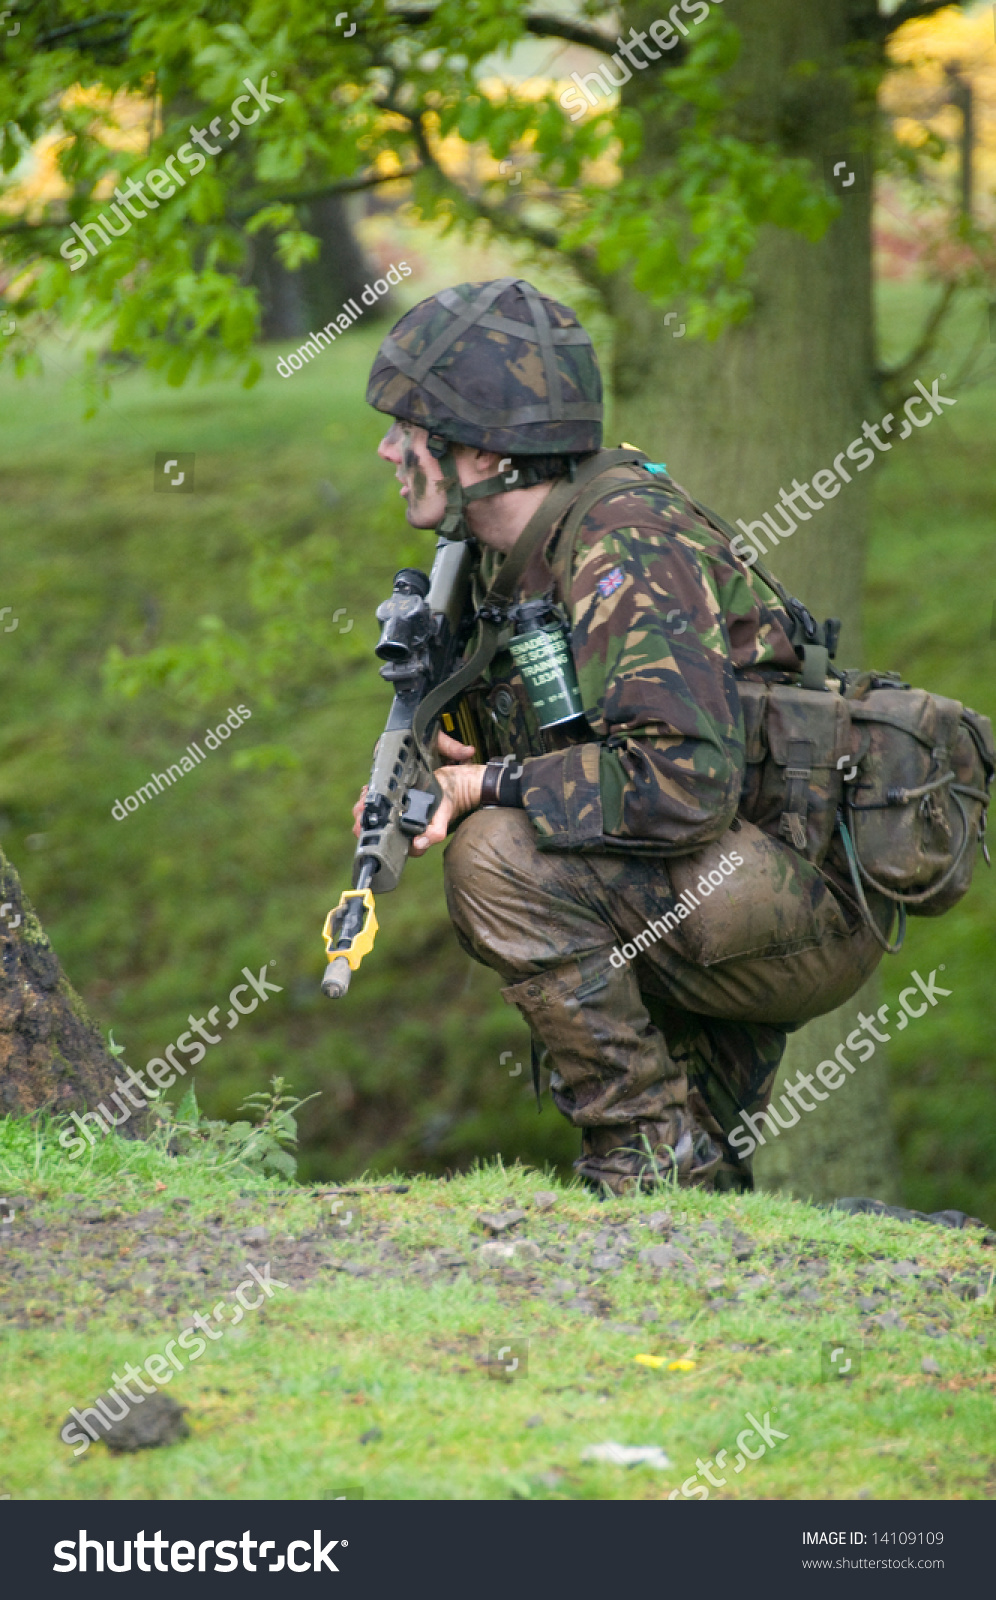 psychology of soldier training in the uk As we are concentrating, in this text, on the ontology of training procedures, i will now concentrate on the role of drill on the personal development of soldiers physically and mentally, and not look at the role of drill in formal military displays.